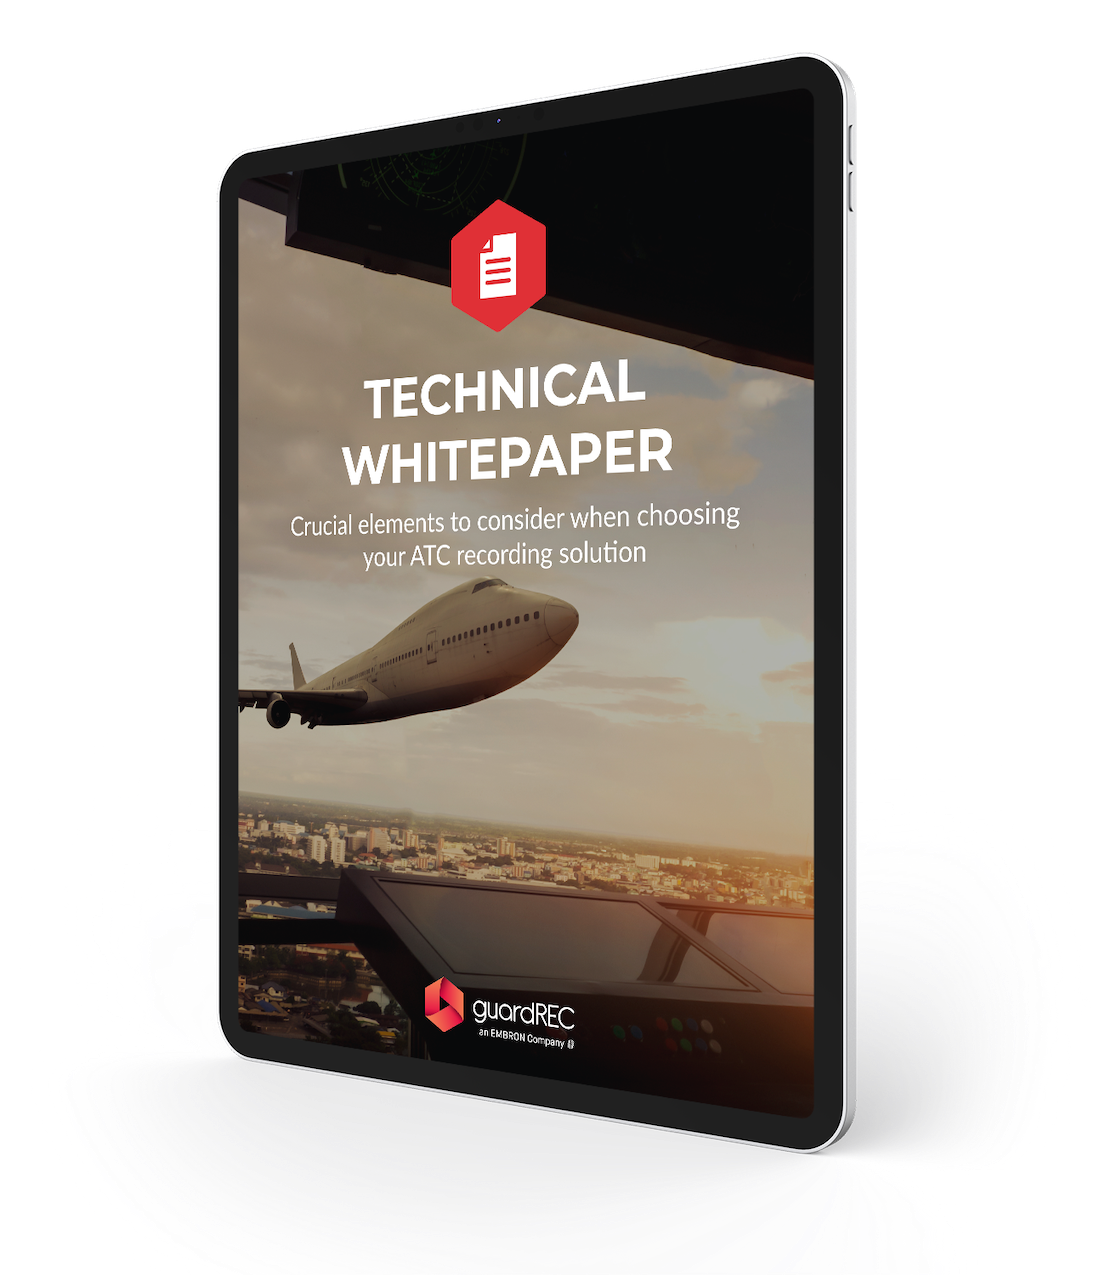 guardREC Technical whitepaper Crucical elements to consider when implementing your ATC recording solution.png